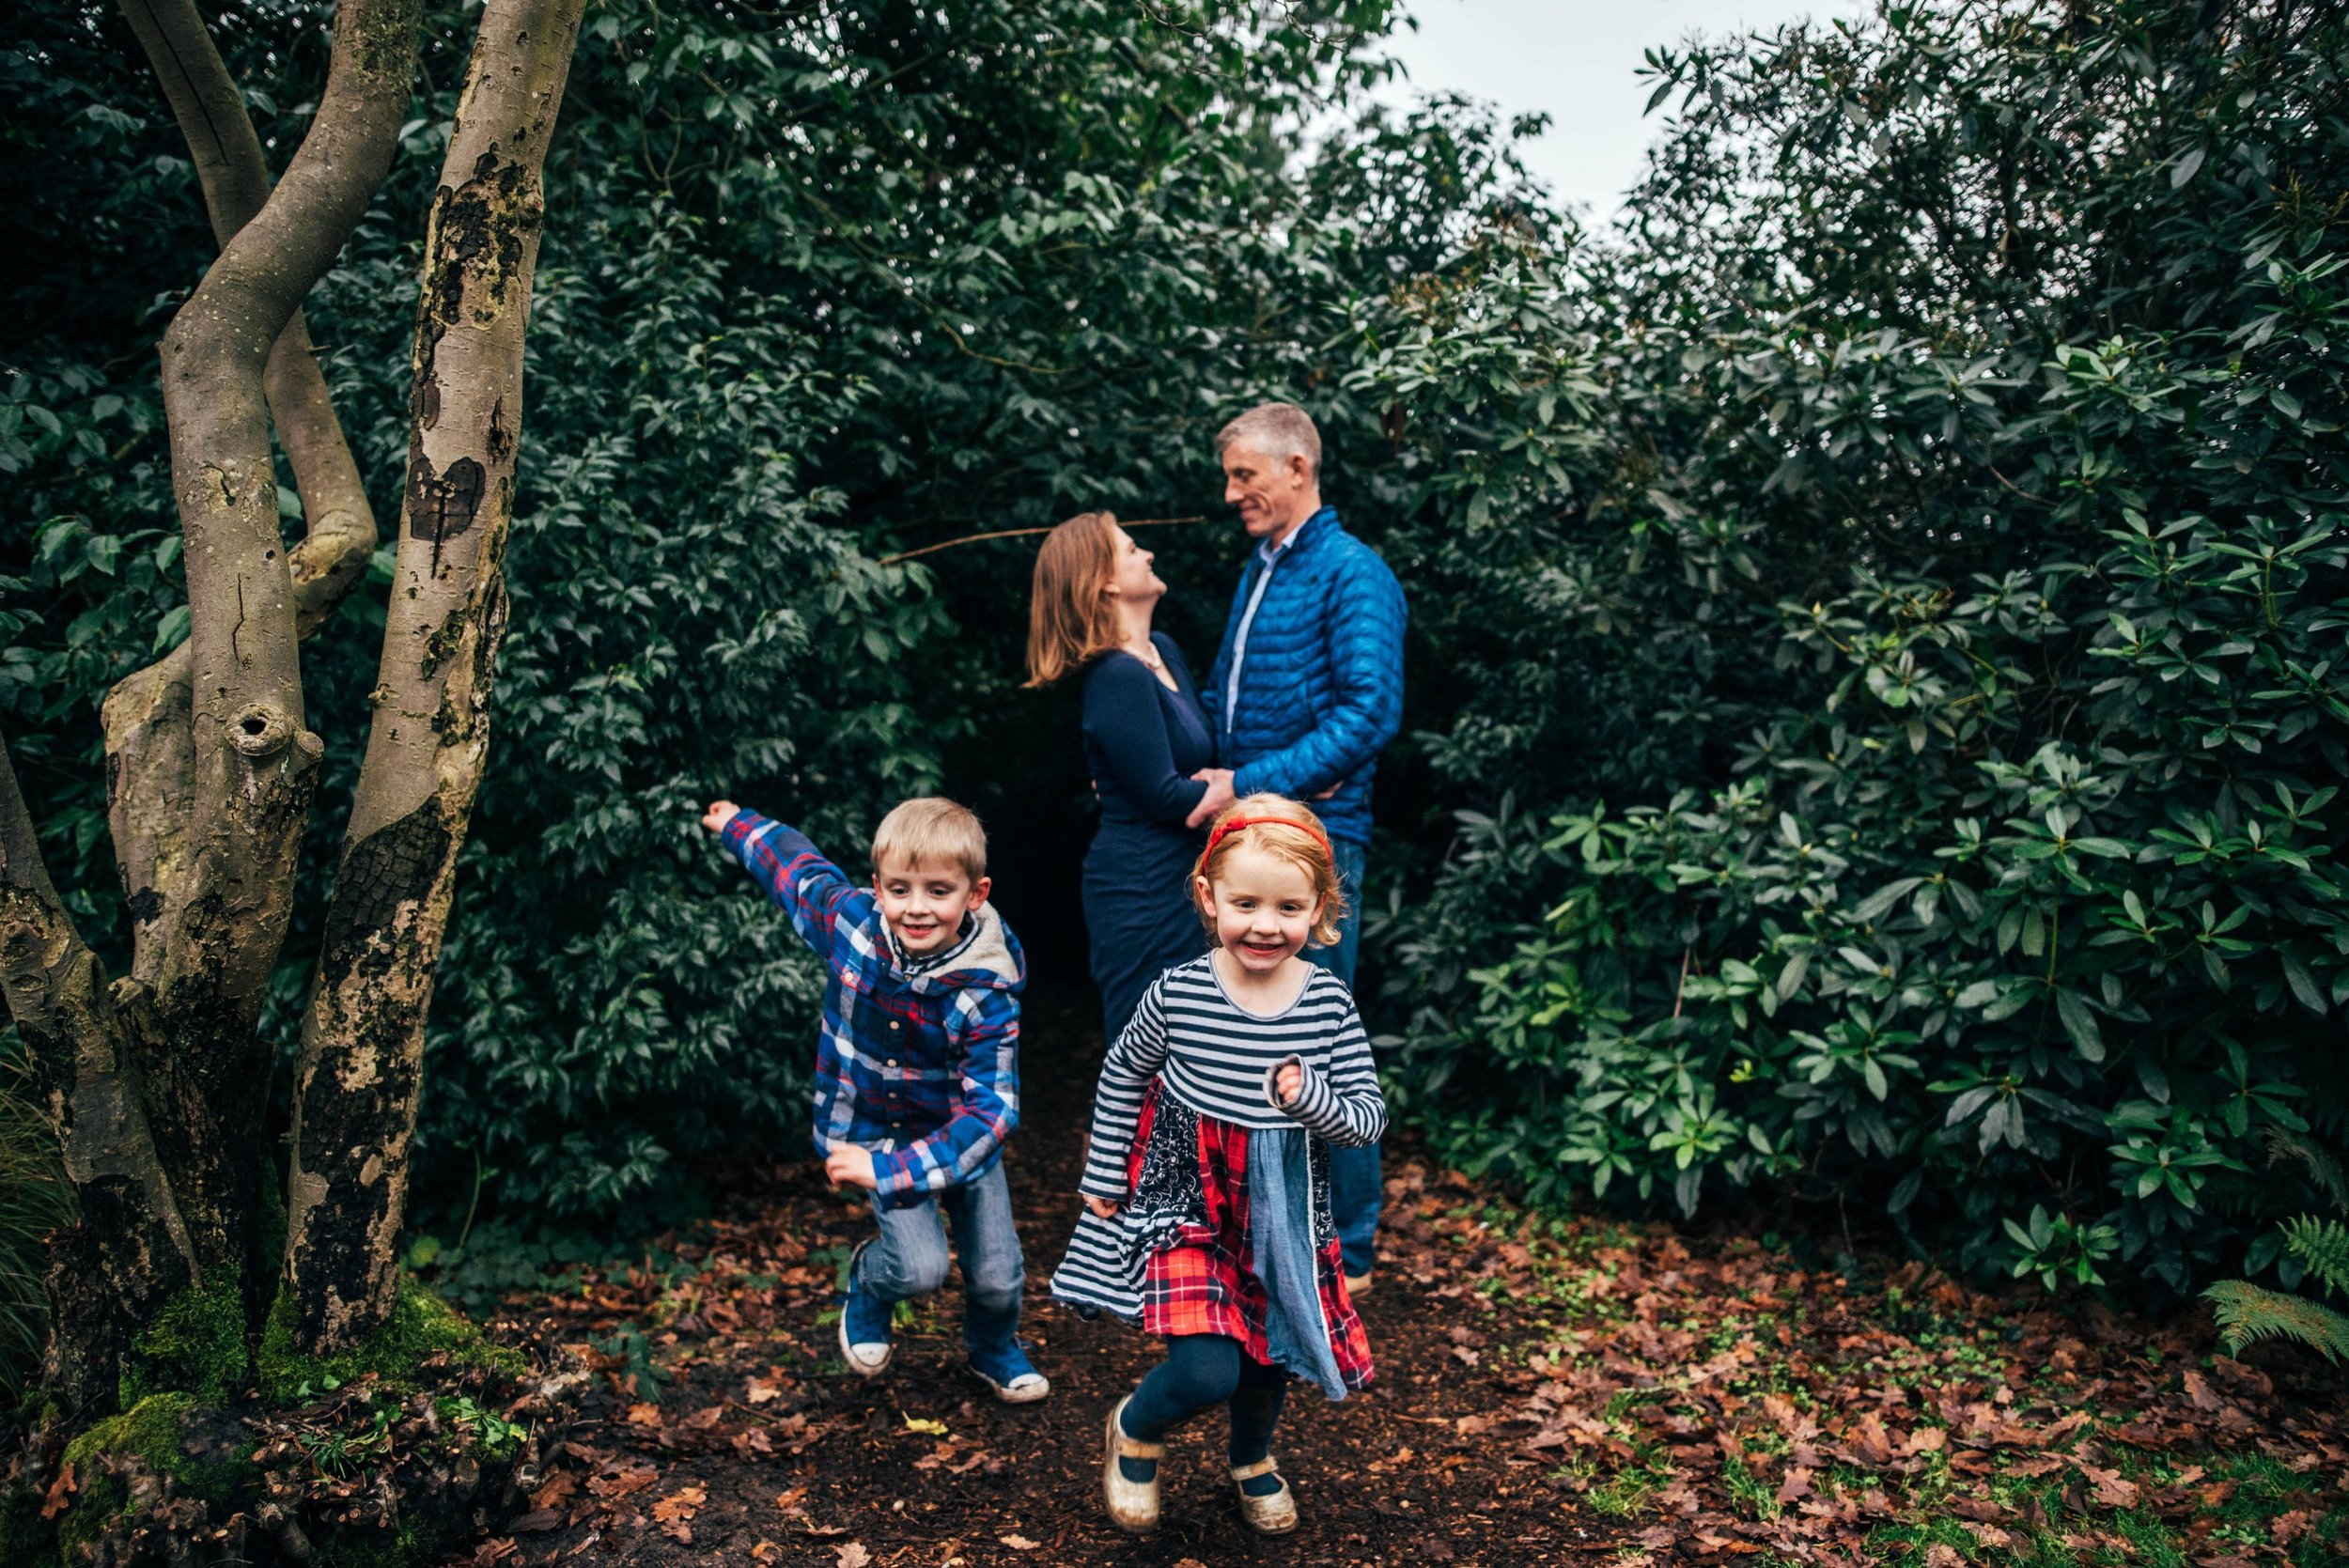 Family Winter Documentary Portraits Hylands Park Essex Documentary Wedding Photographer